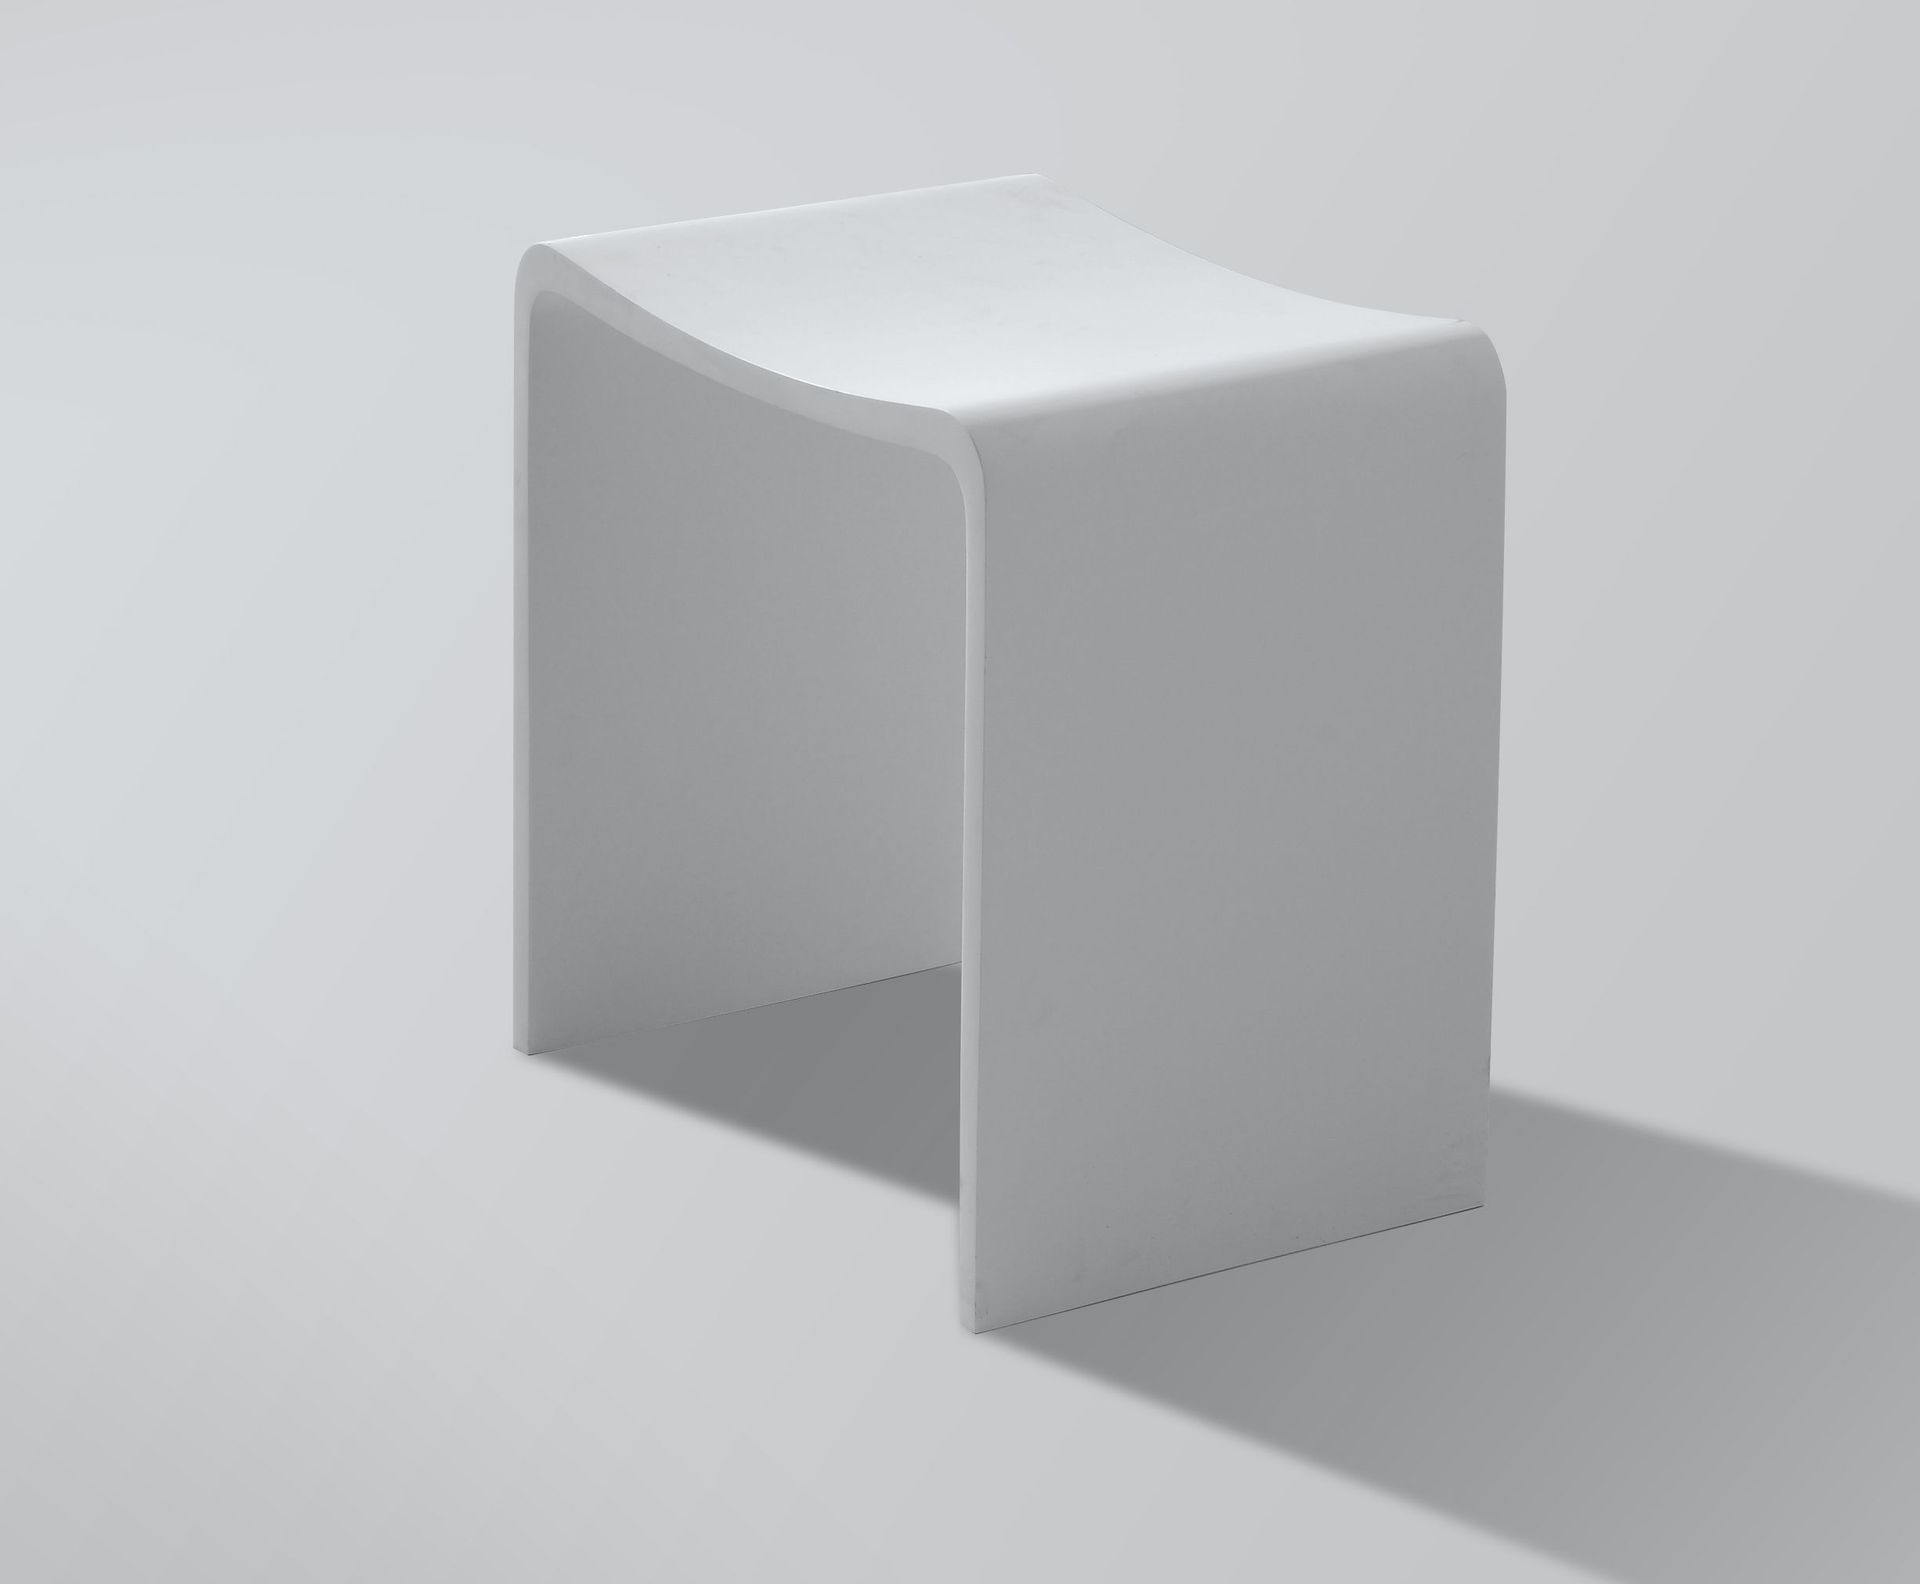 Solid surface hocker design in uw badkamer douchecabine.nl